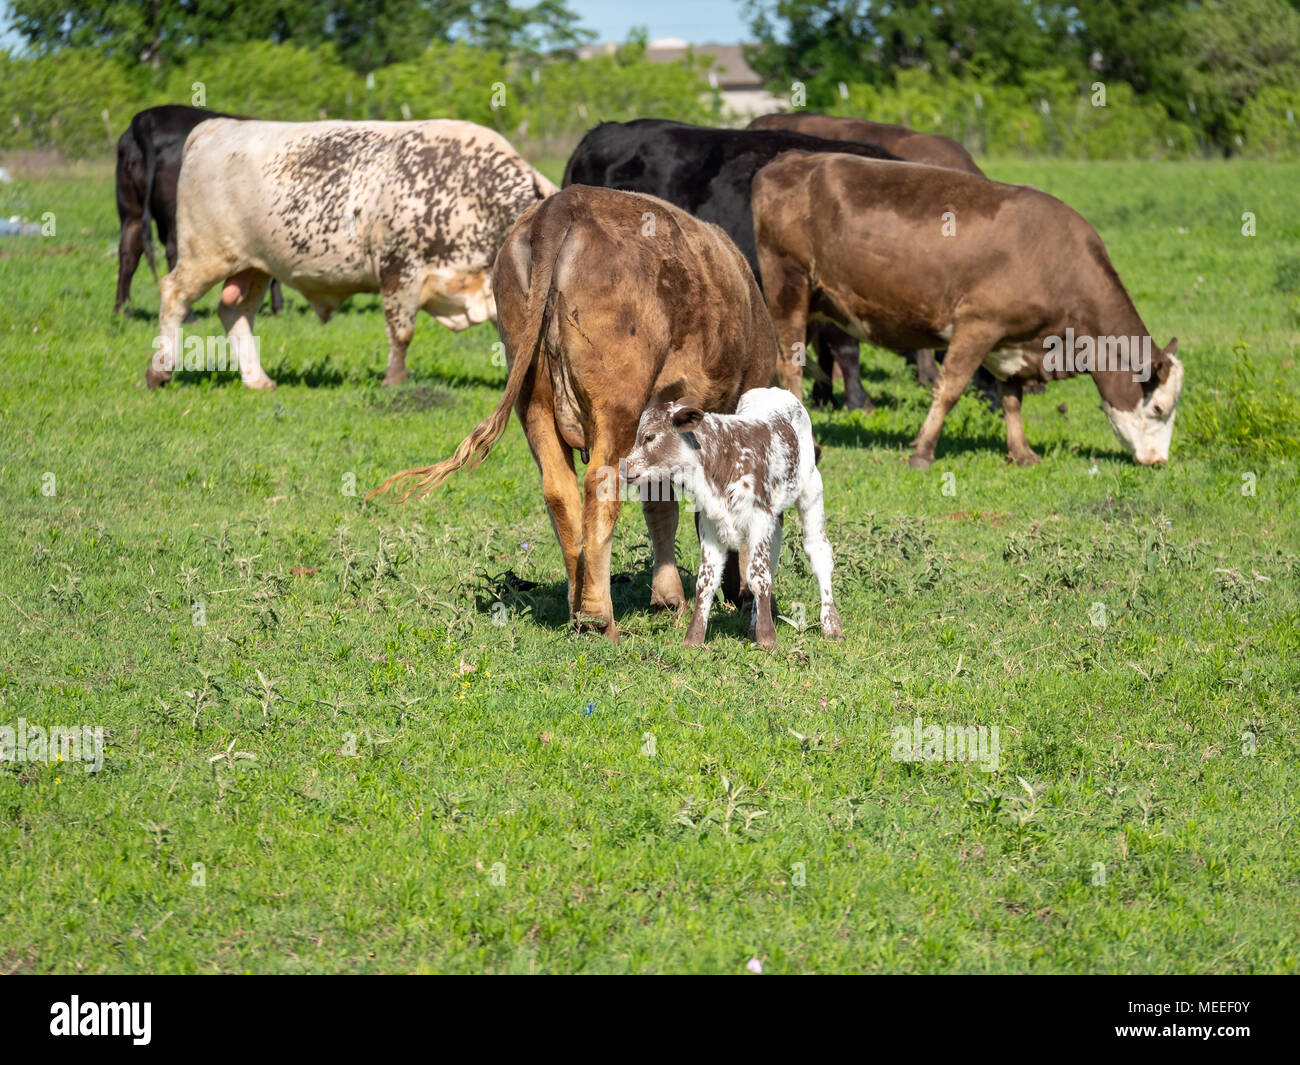 Small Caff Drinking Milk from Mother Cow - Stock Image